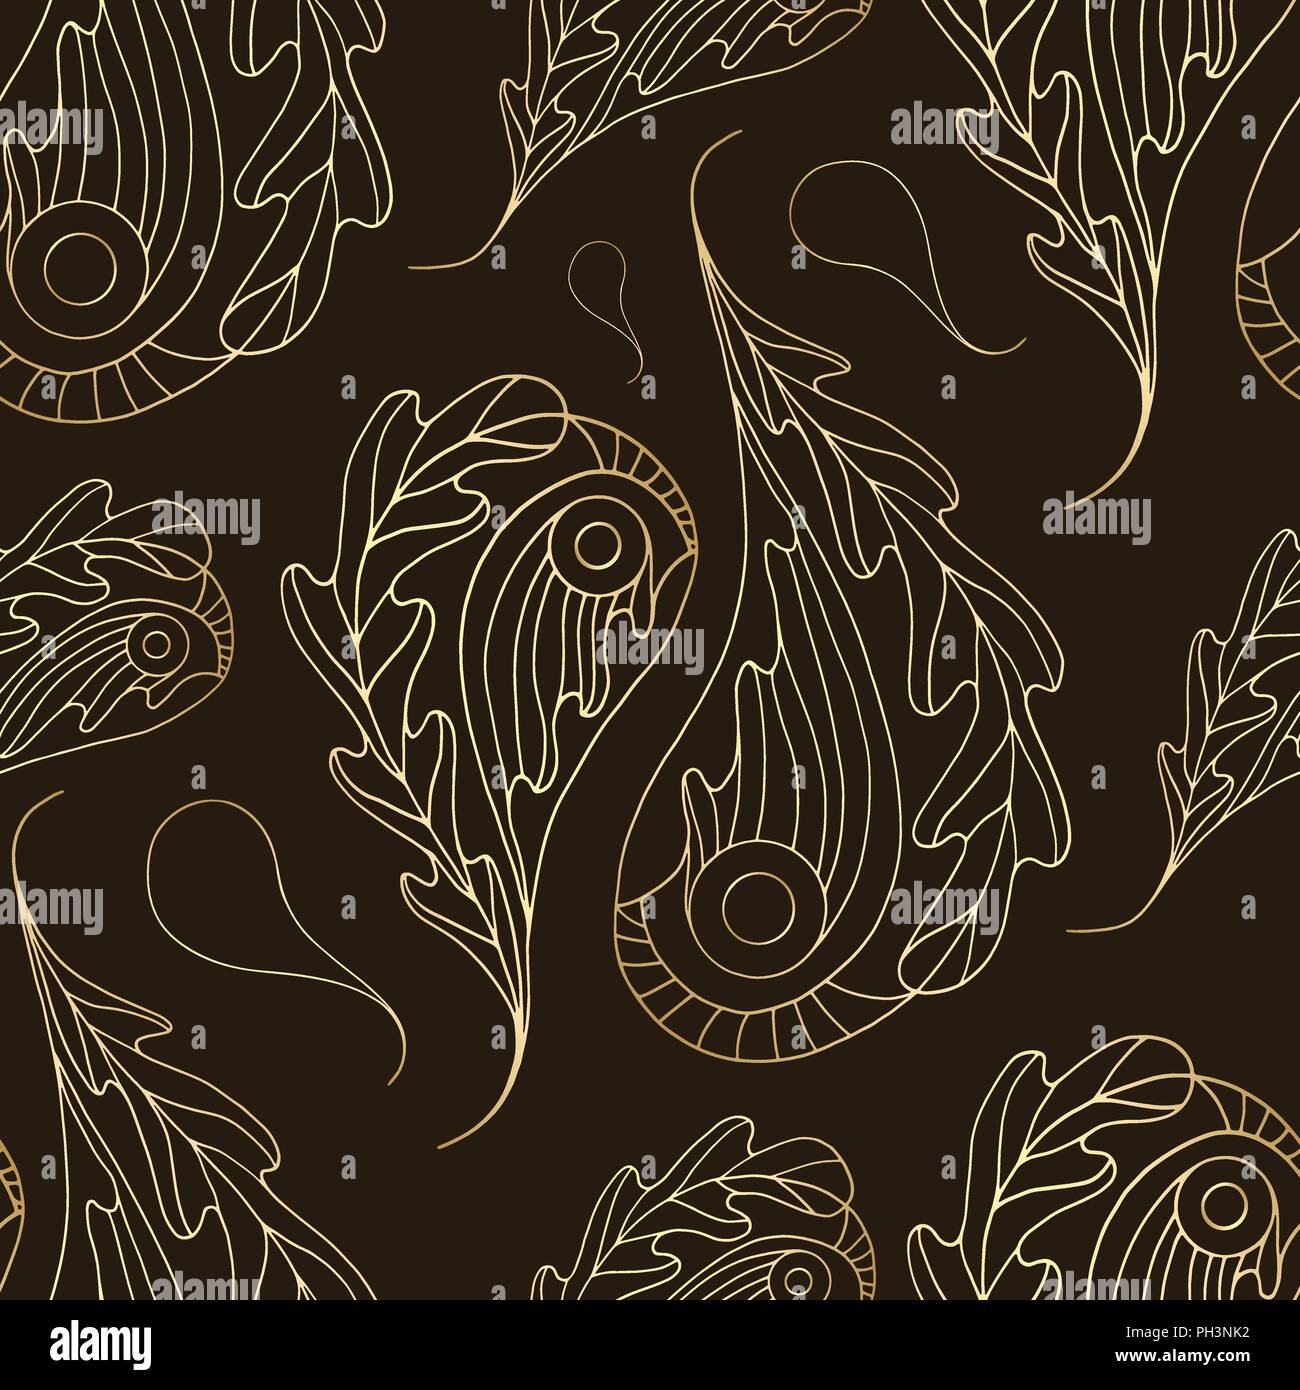 Hand Drawn Paisley Vector Seamless Pattern Gold Abstract Oak Leaves Texture For Wallpaper Wrapping Paper Textile Surface Design Phone Case Print